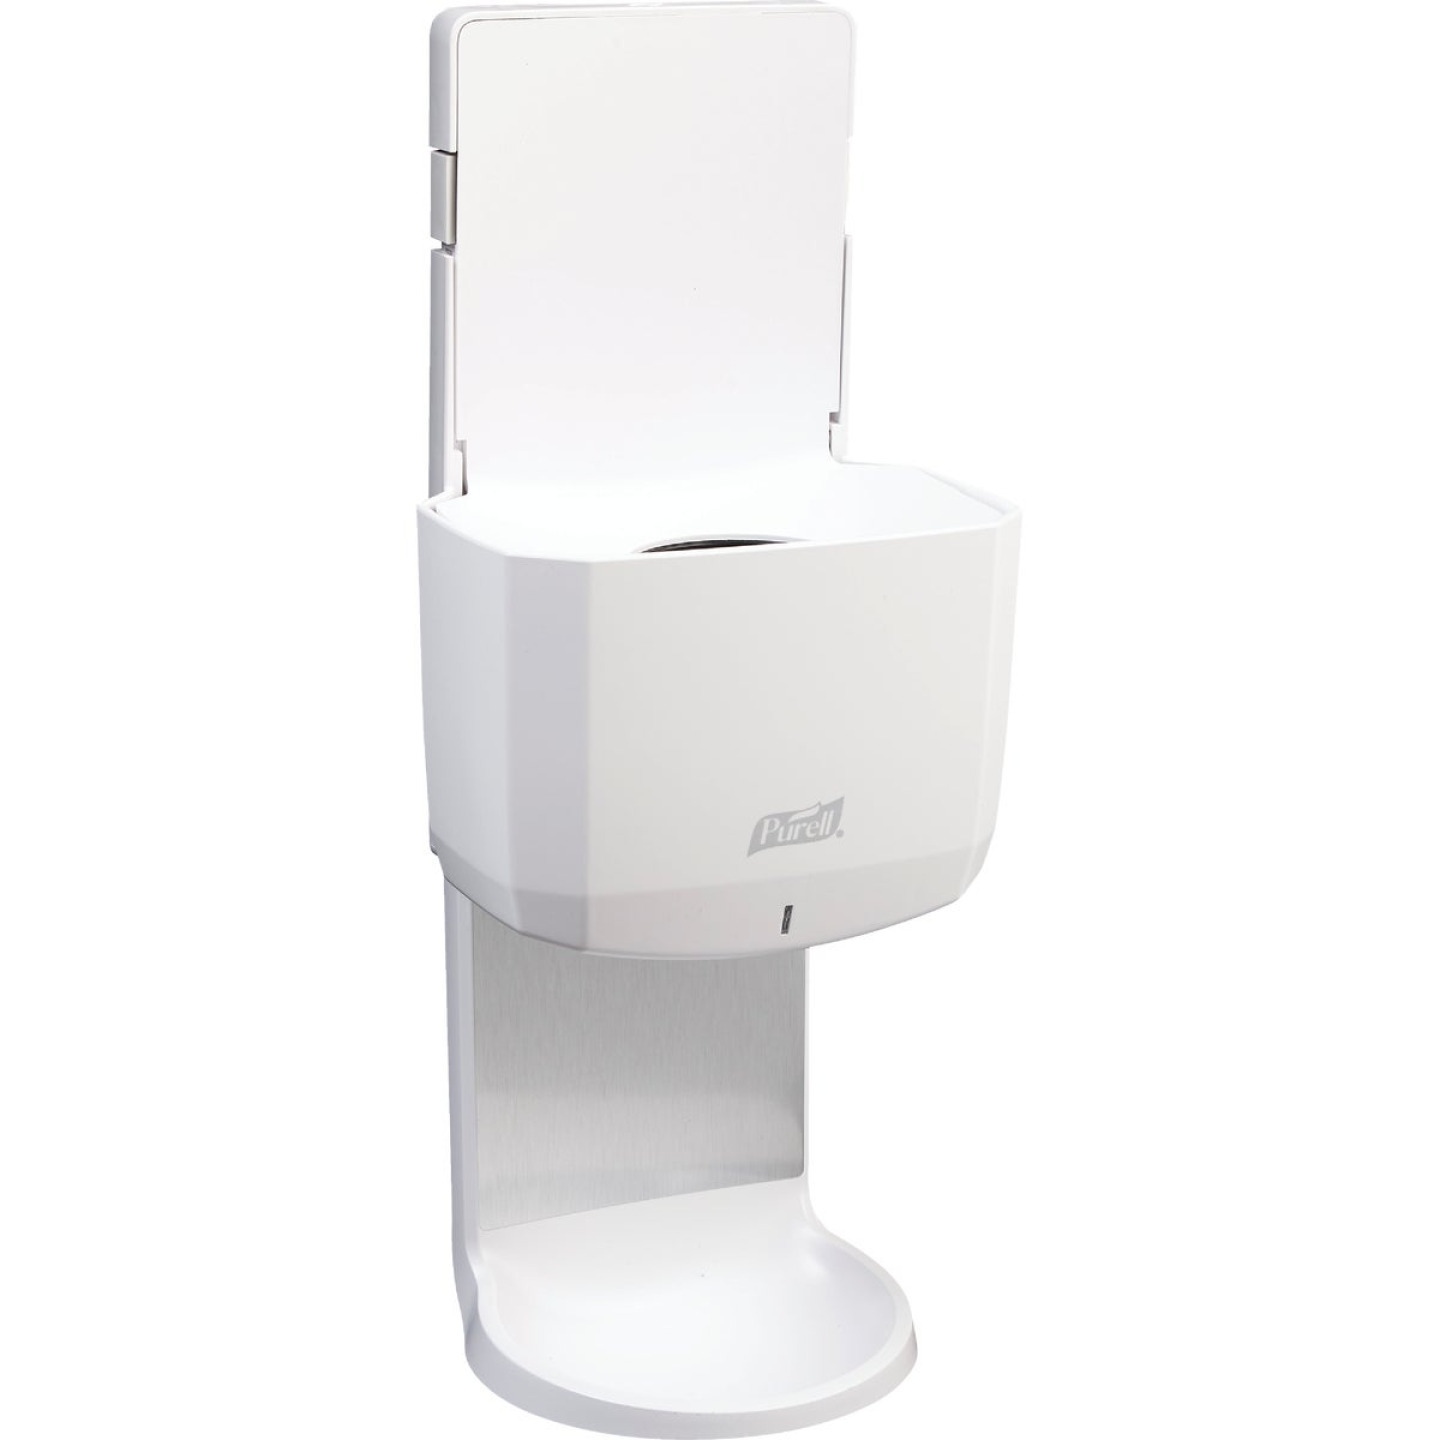 Purell ES6 Touch-Free White 1200mL Hand Sanitizer Dispenser Image 1